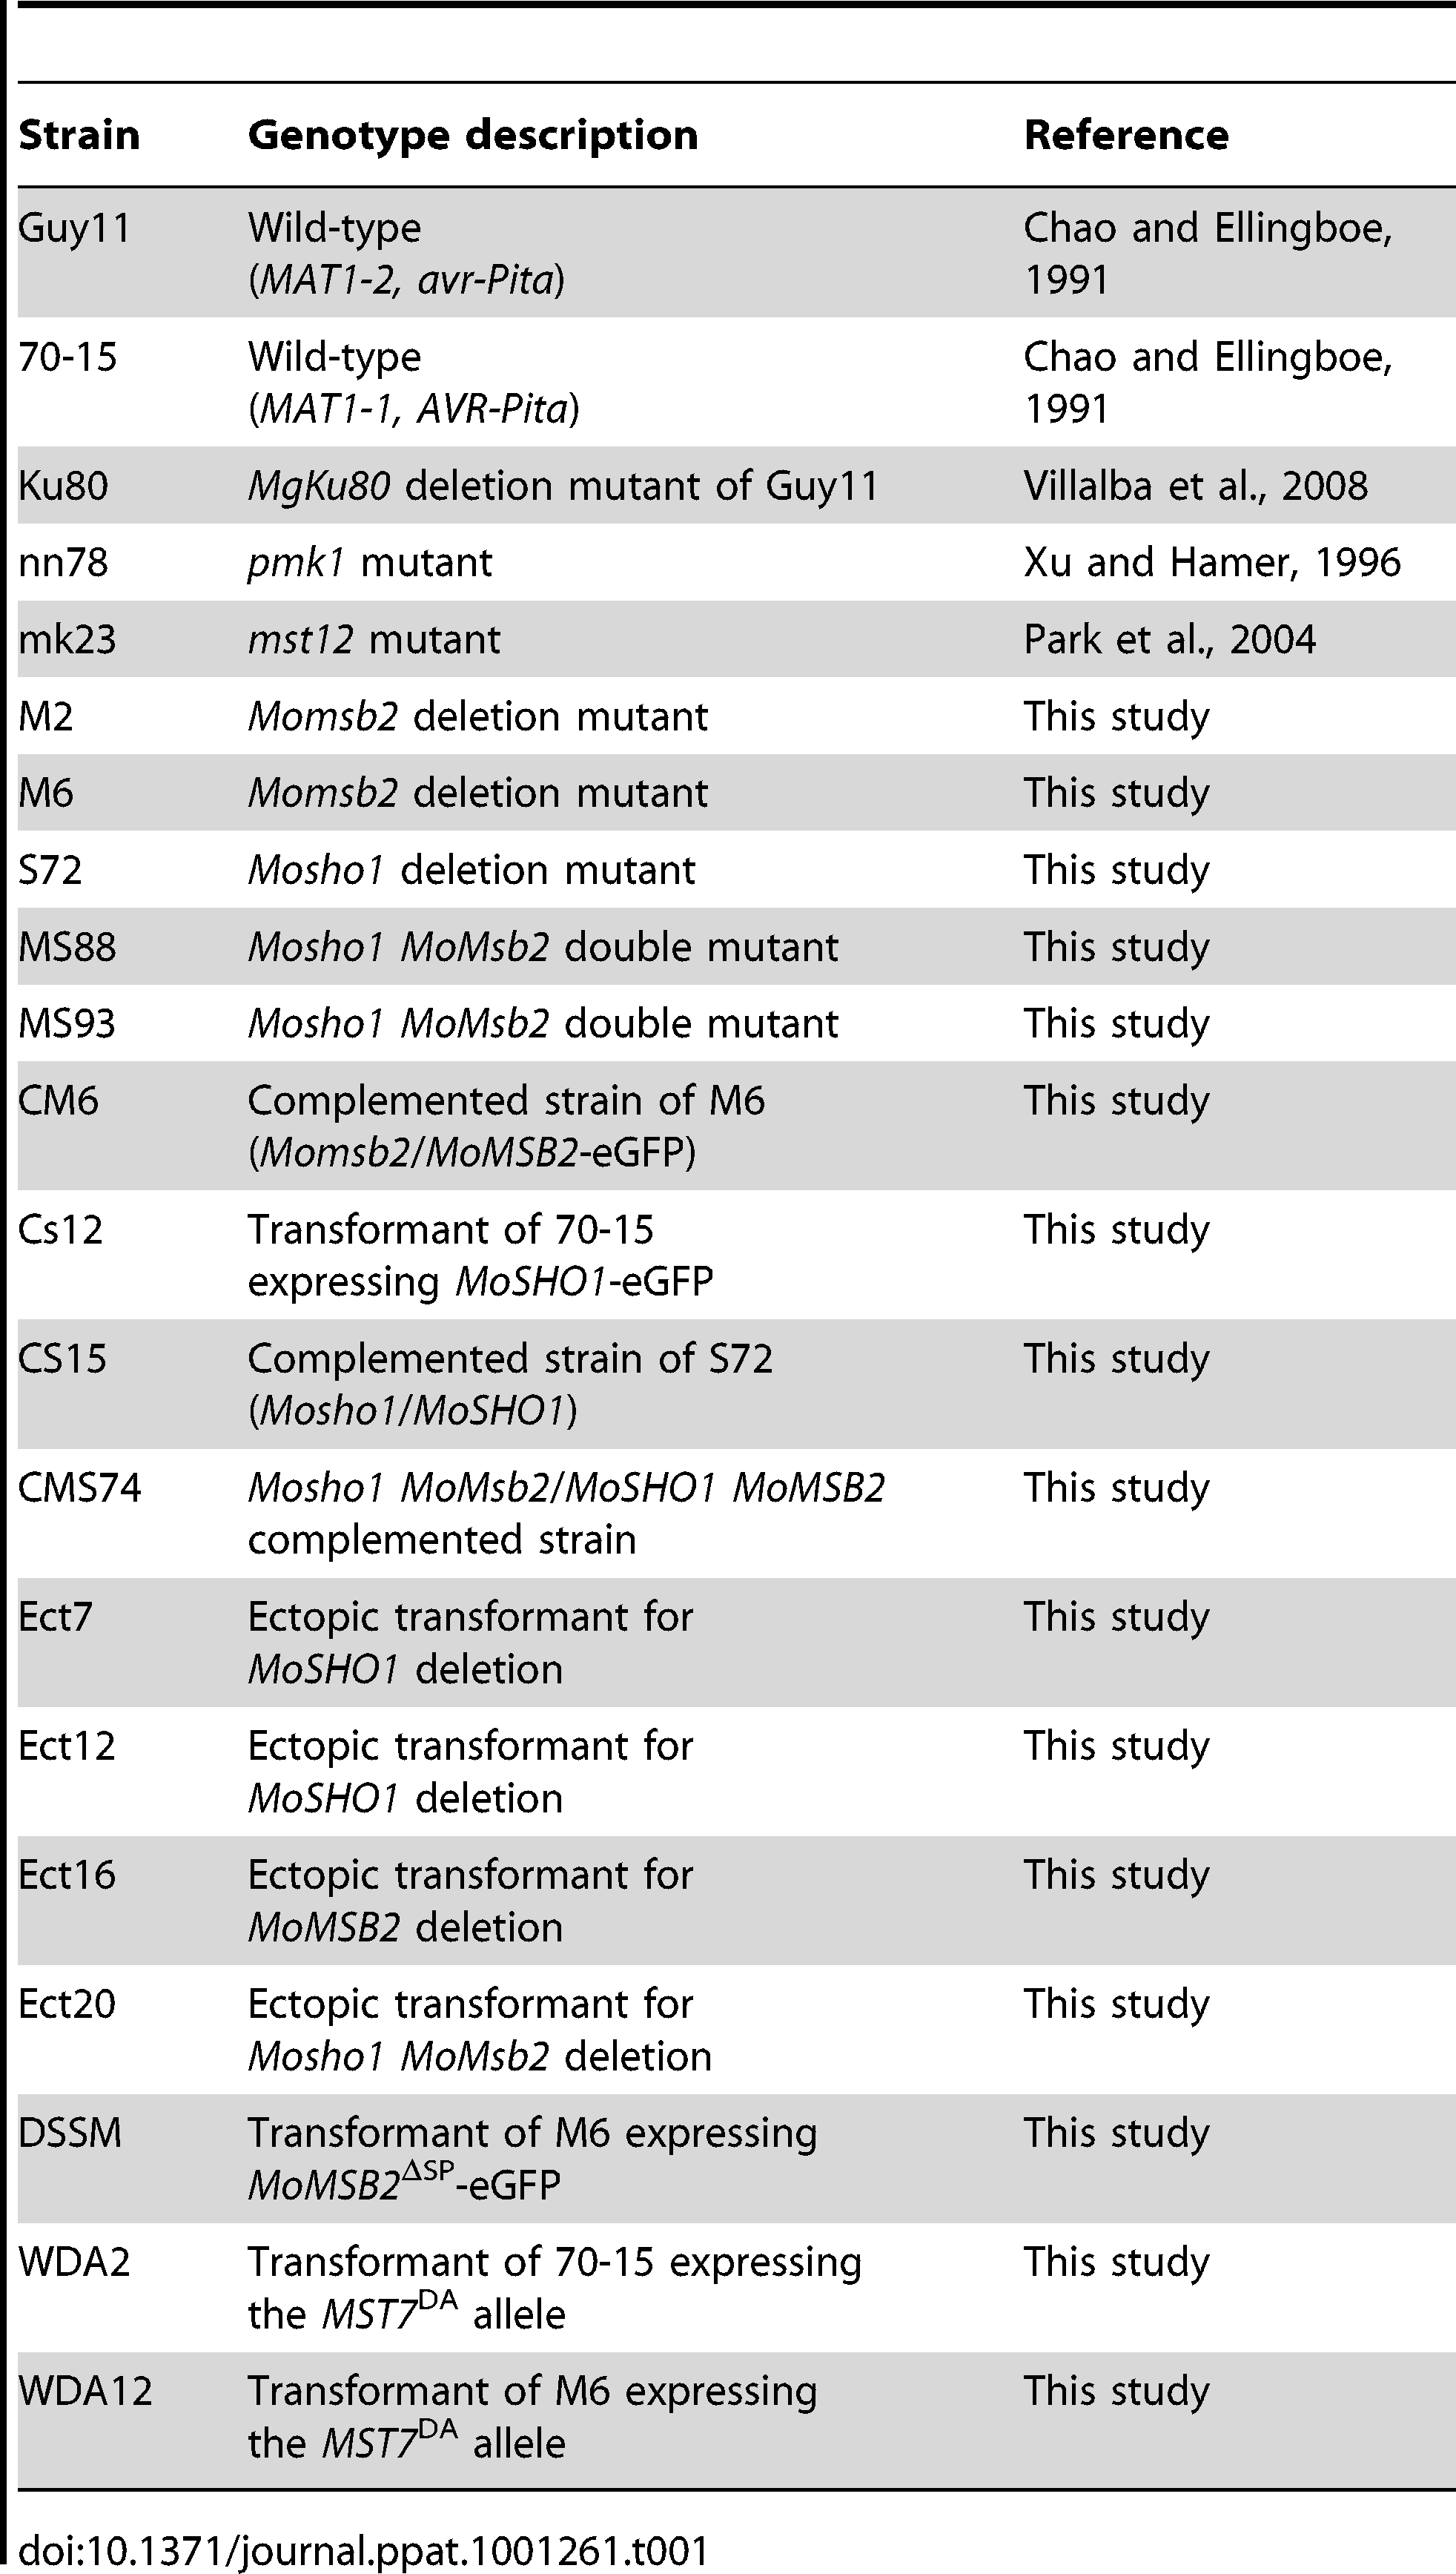 Wild-type and mutant strains of <i>Magnaporthe oryzae</i> used in this study.